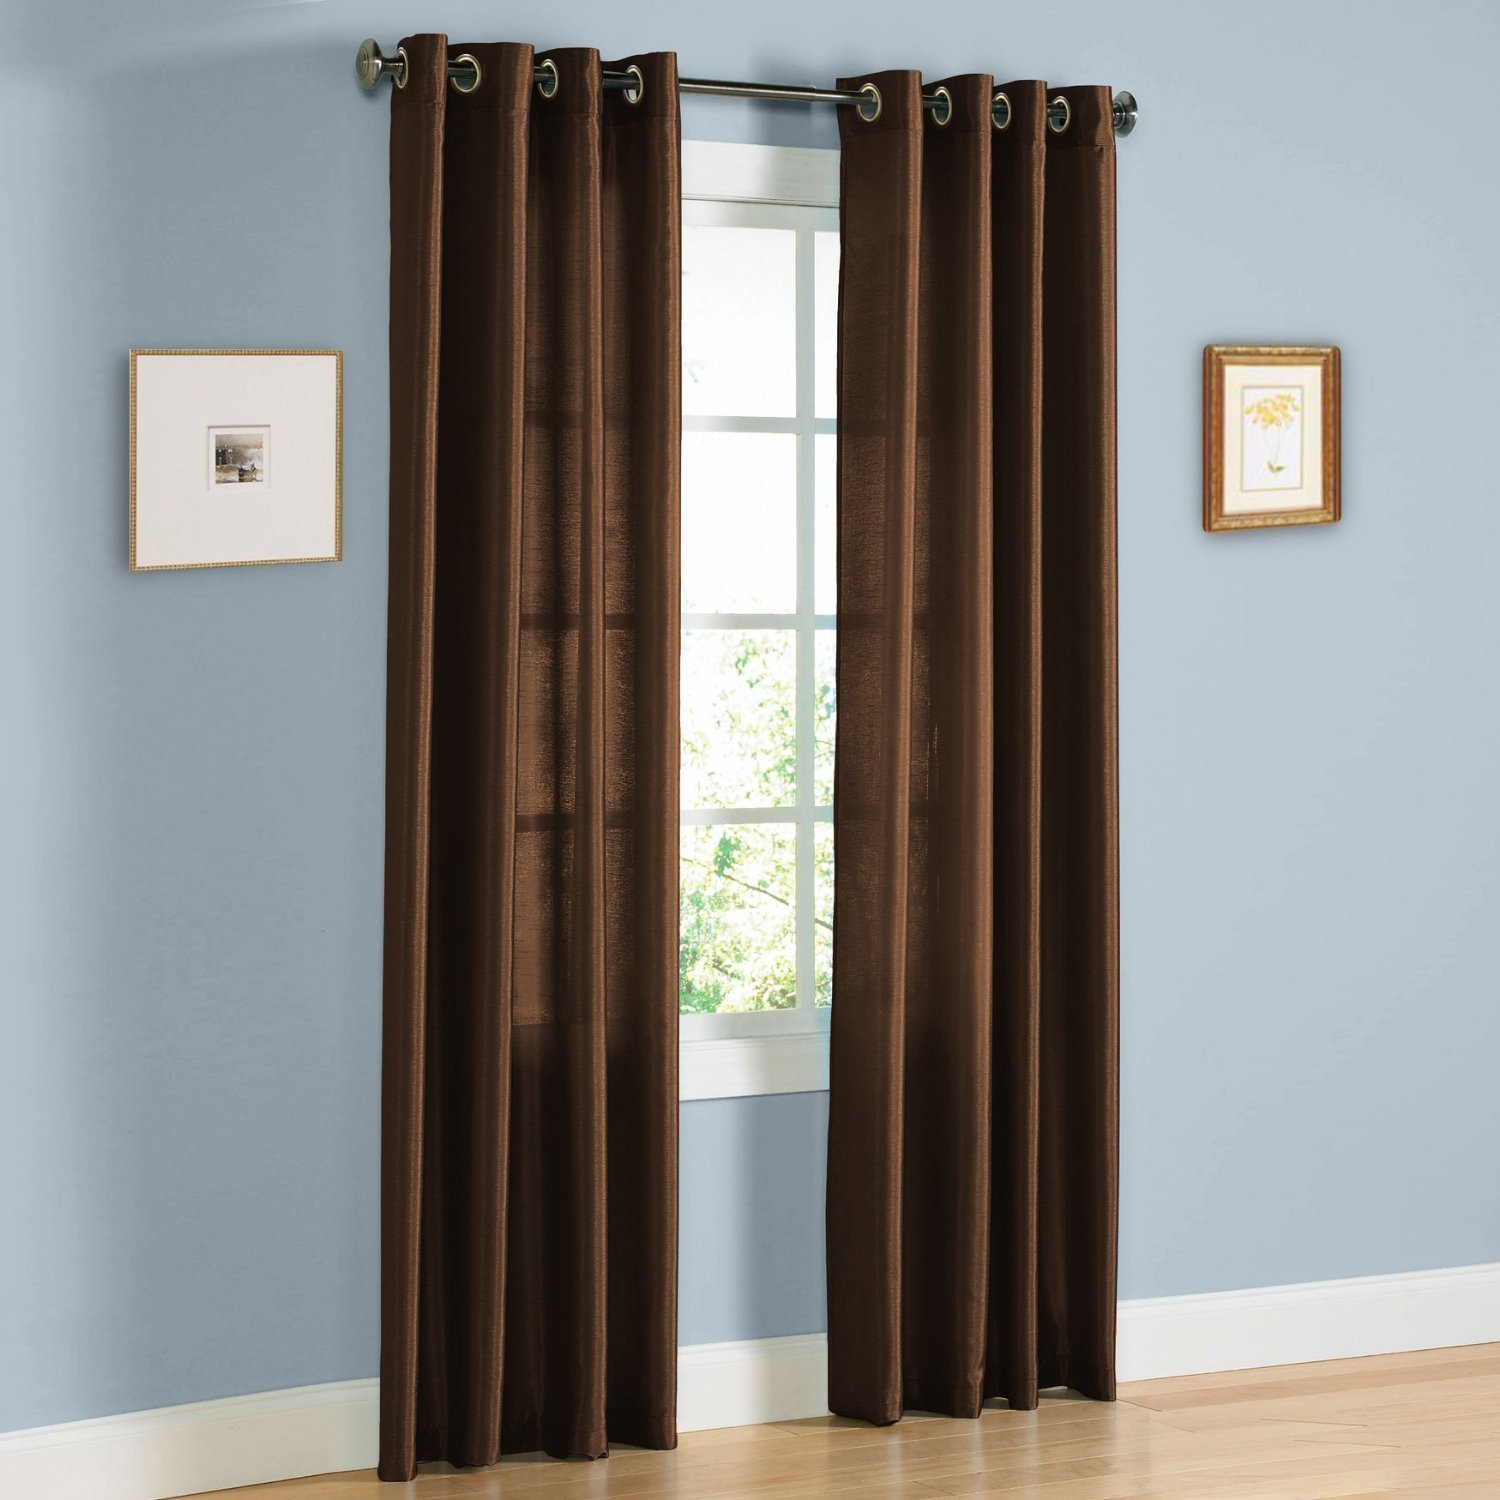 "Qutain Linen Faux Silk Grommet Curtain Window Panel Solid 55"" x 84 - Coffee Brown"